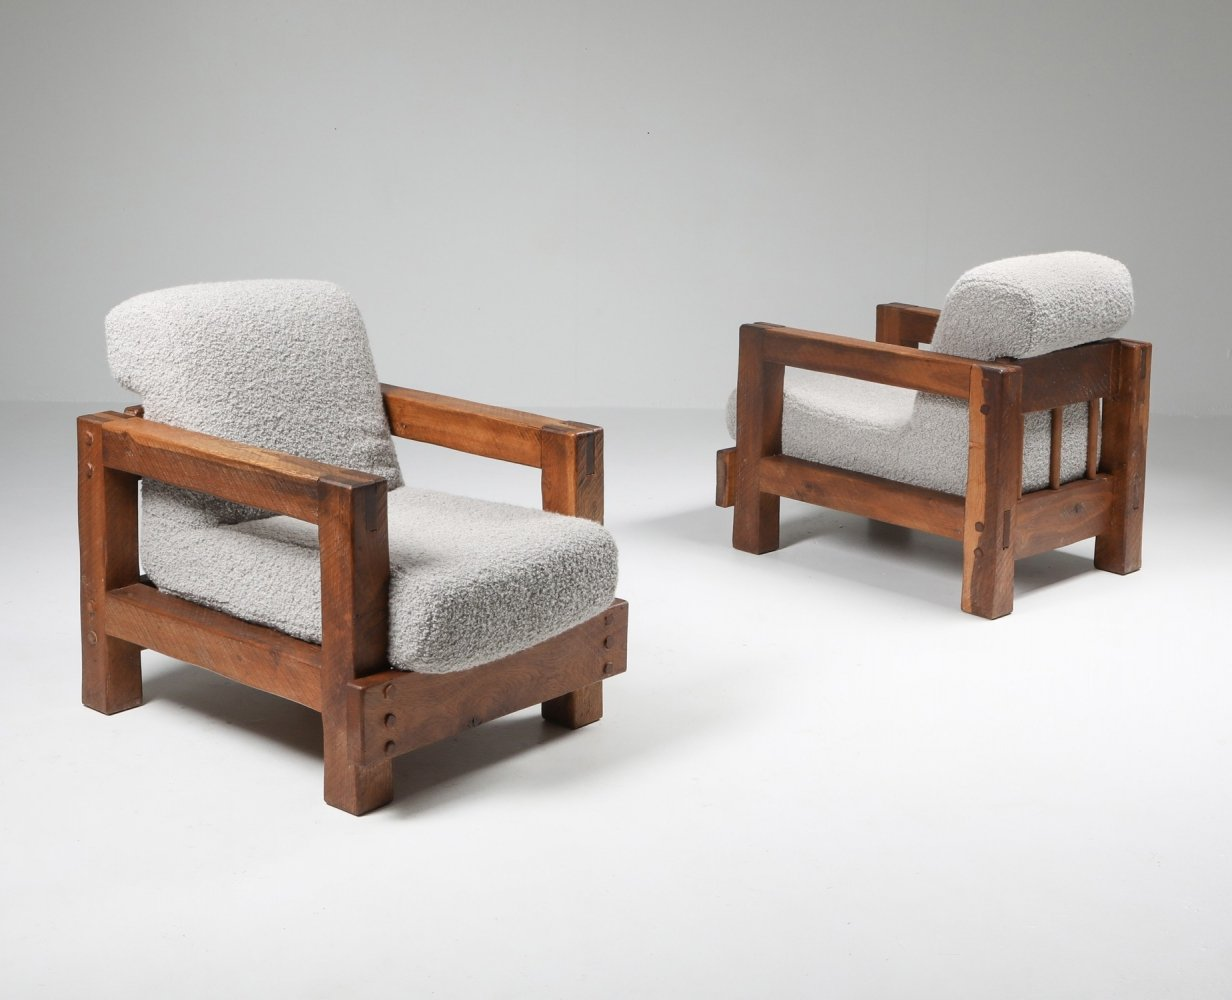 Rustic Modern Primitive Lounge Chairs, Lounge Chairs With Wooden Arms